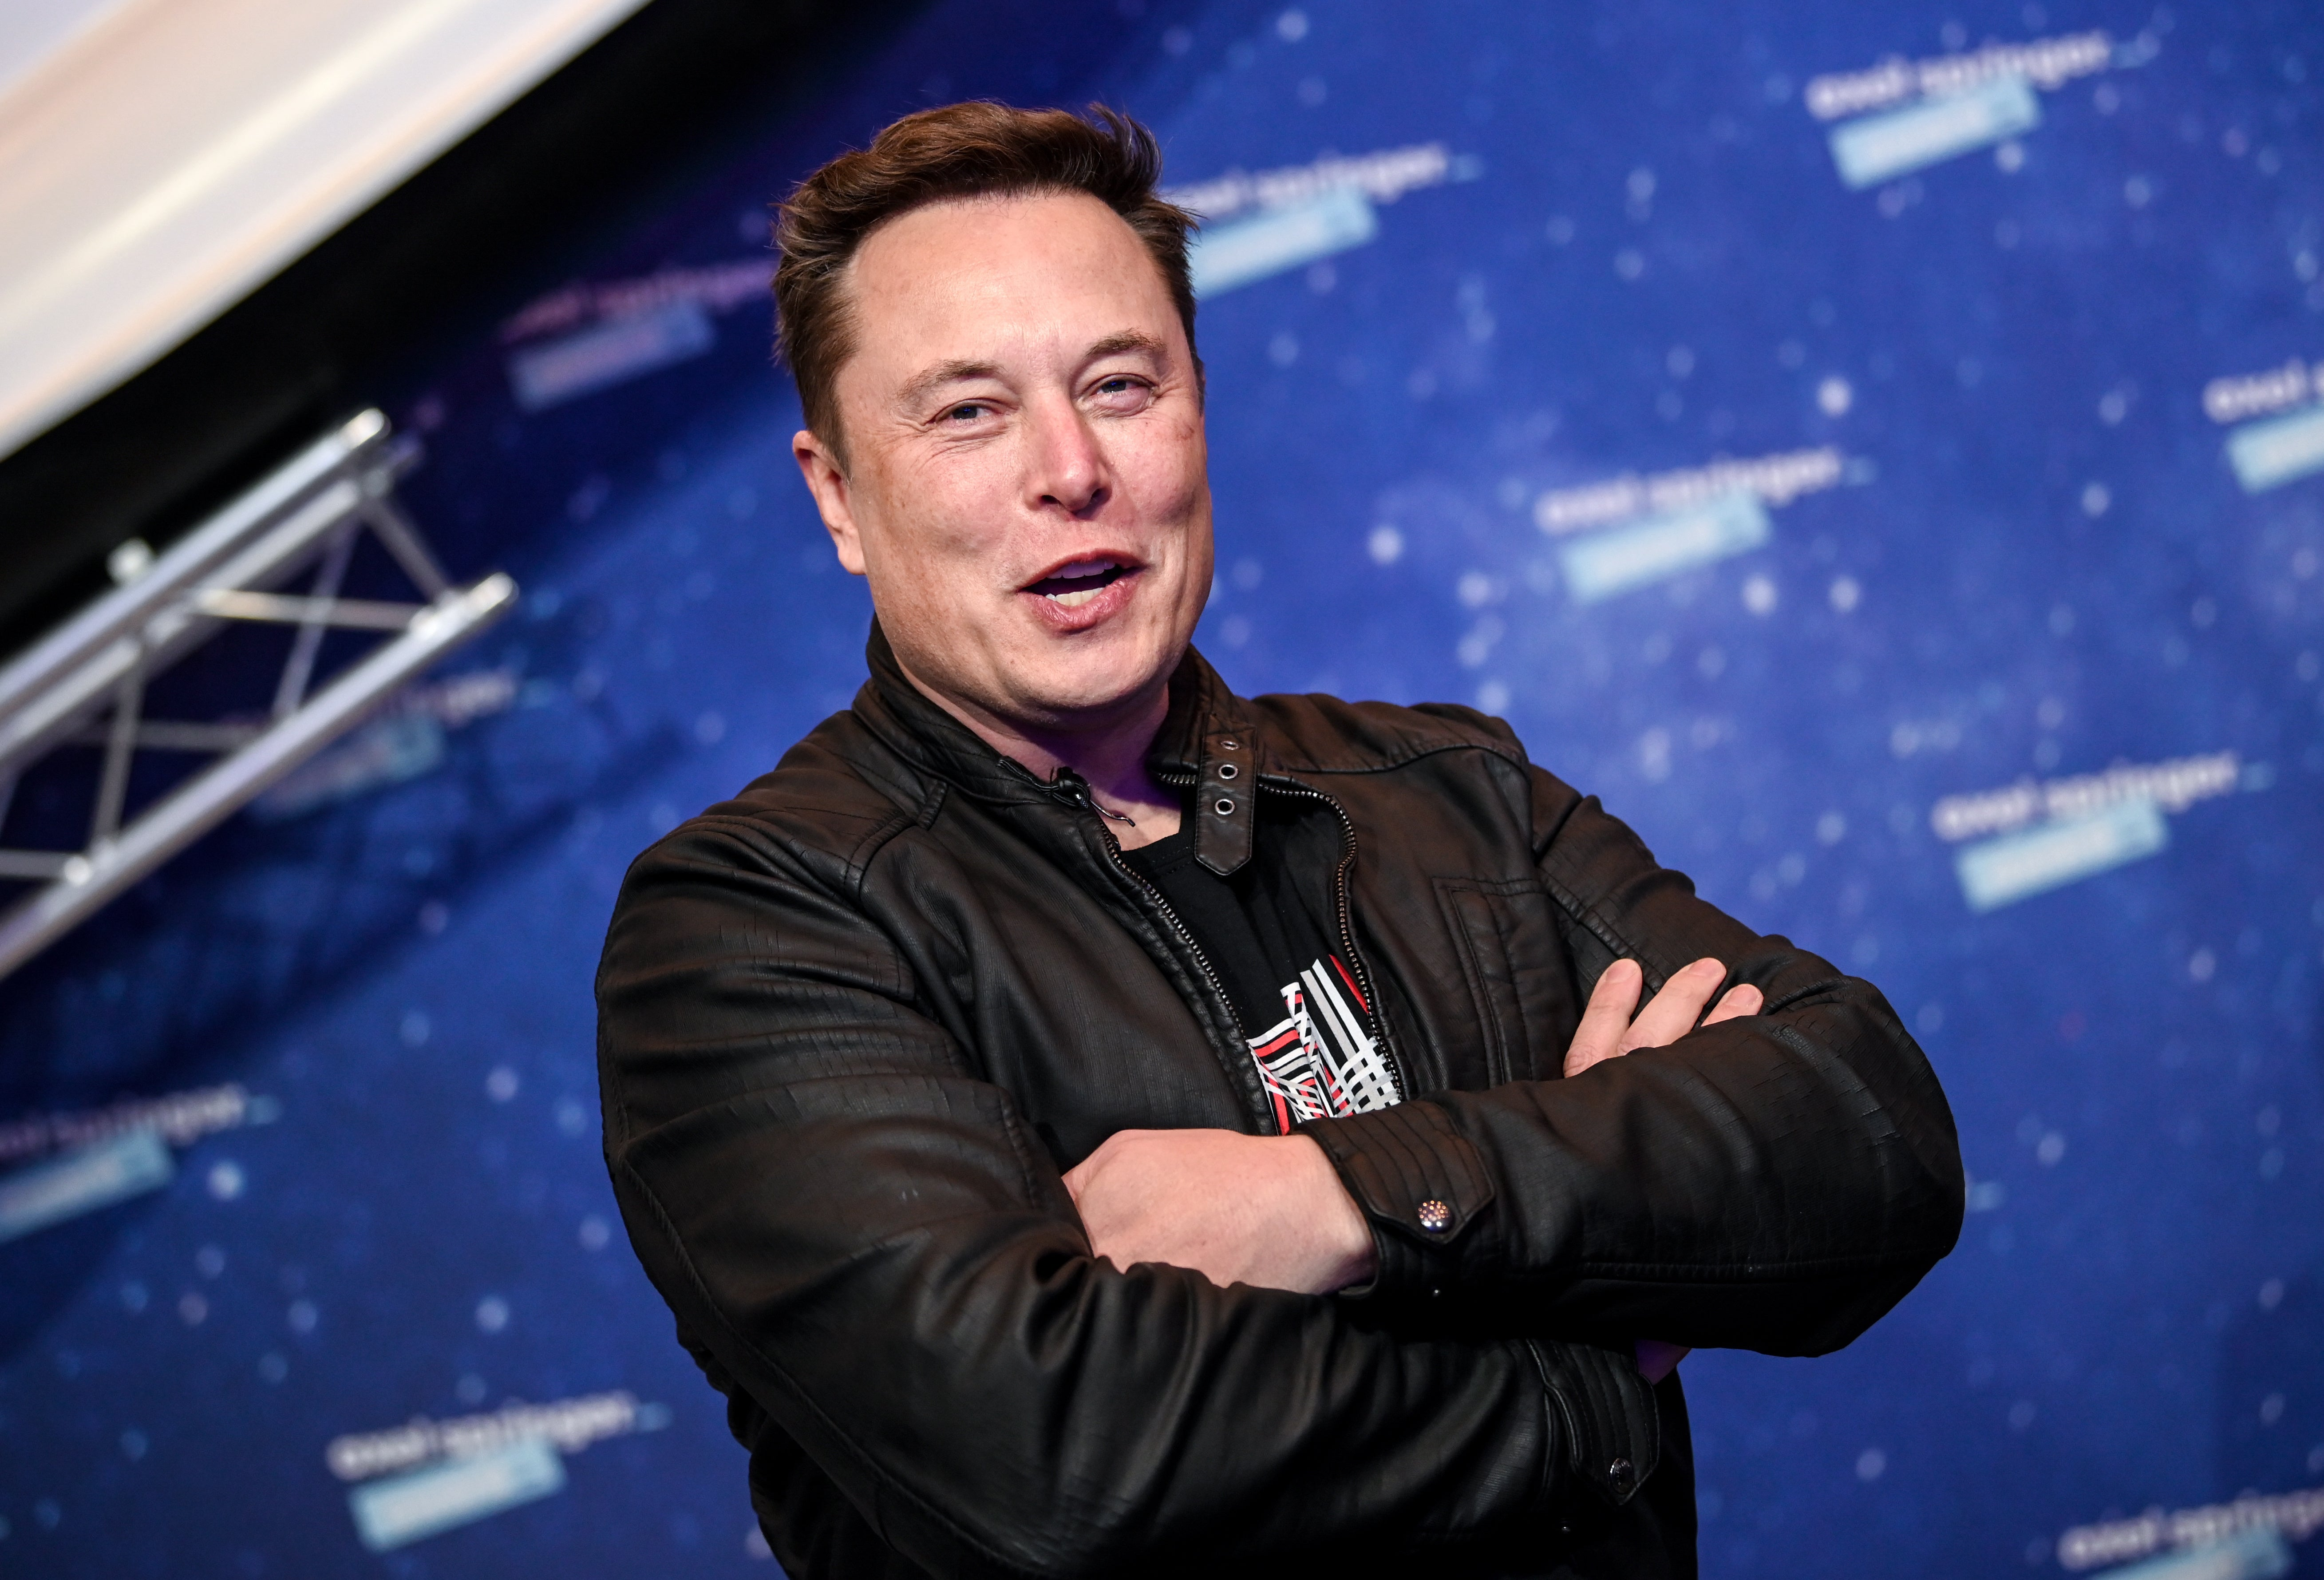 Elon Musk wants to build tunnels under Miami - independent